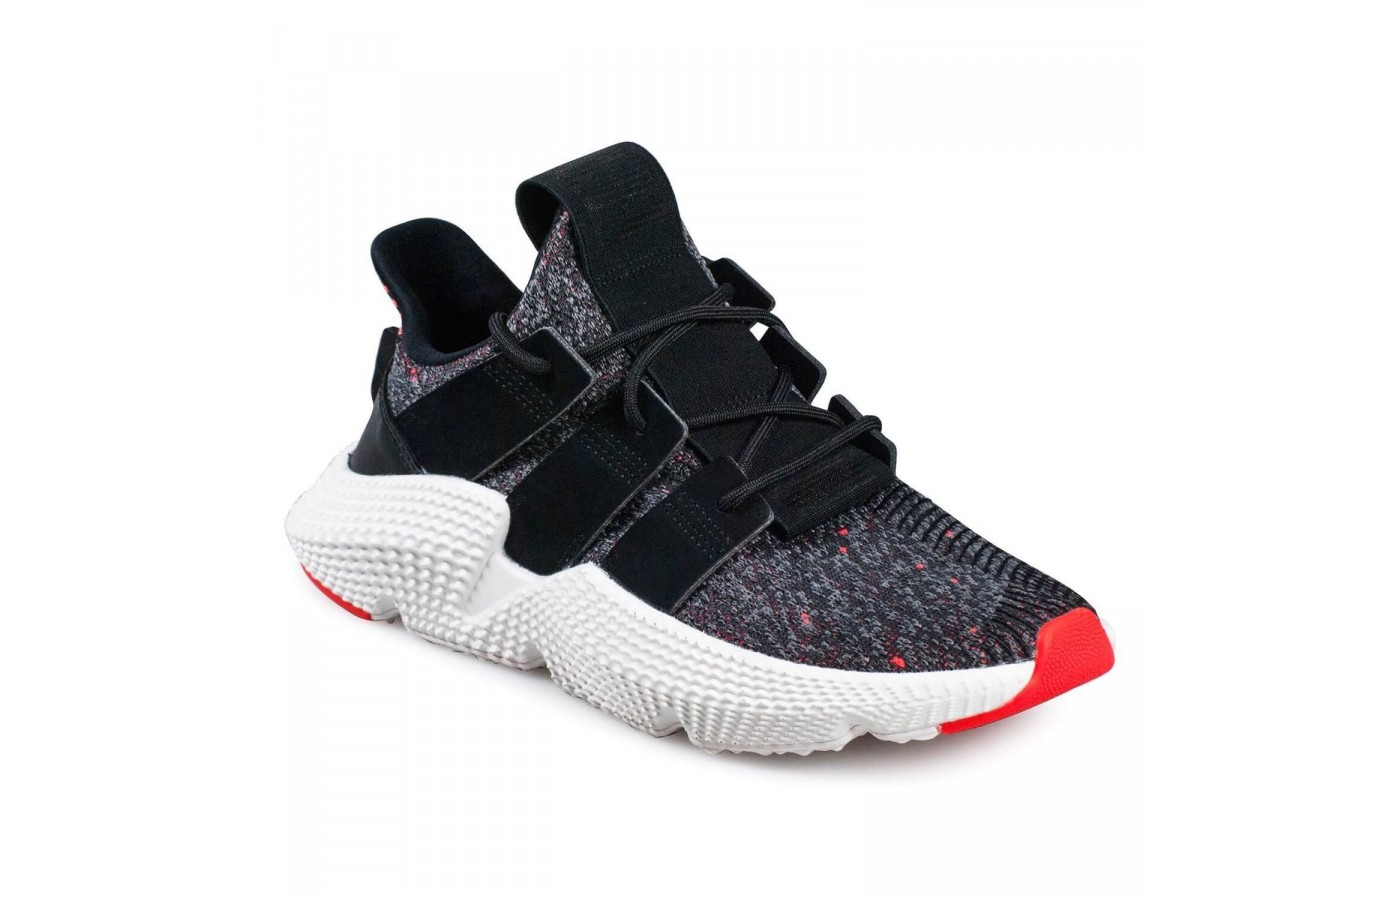 The Adidas Prophere includes an Ortholite sockliner ... a89d25f89